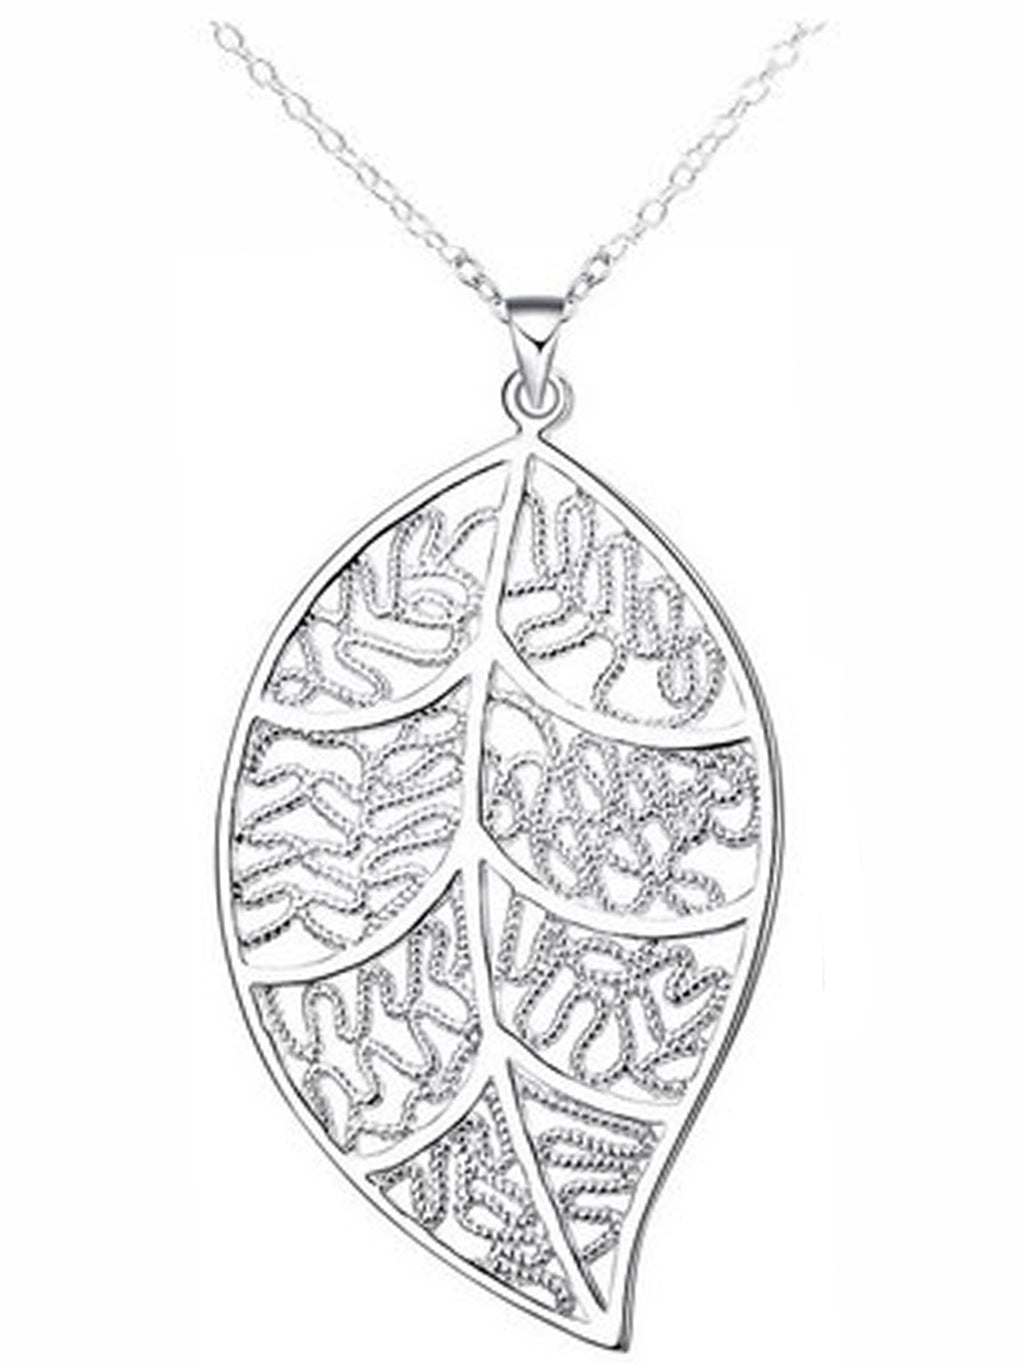 Sterling Silver Plated Filigree Leaf Pendant Necklace